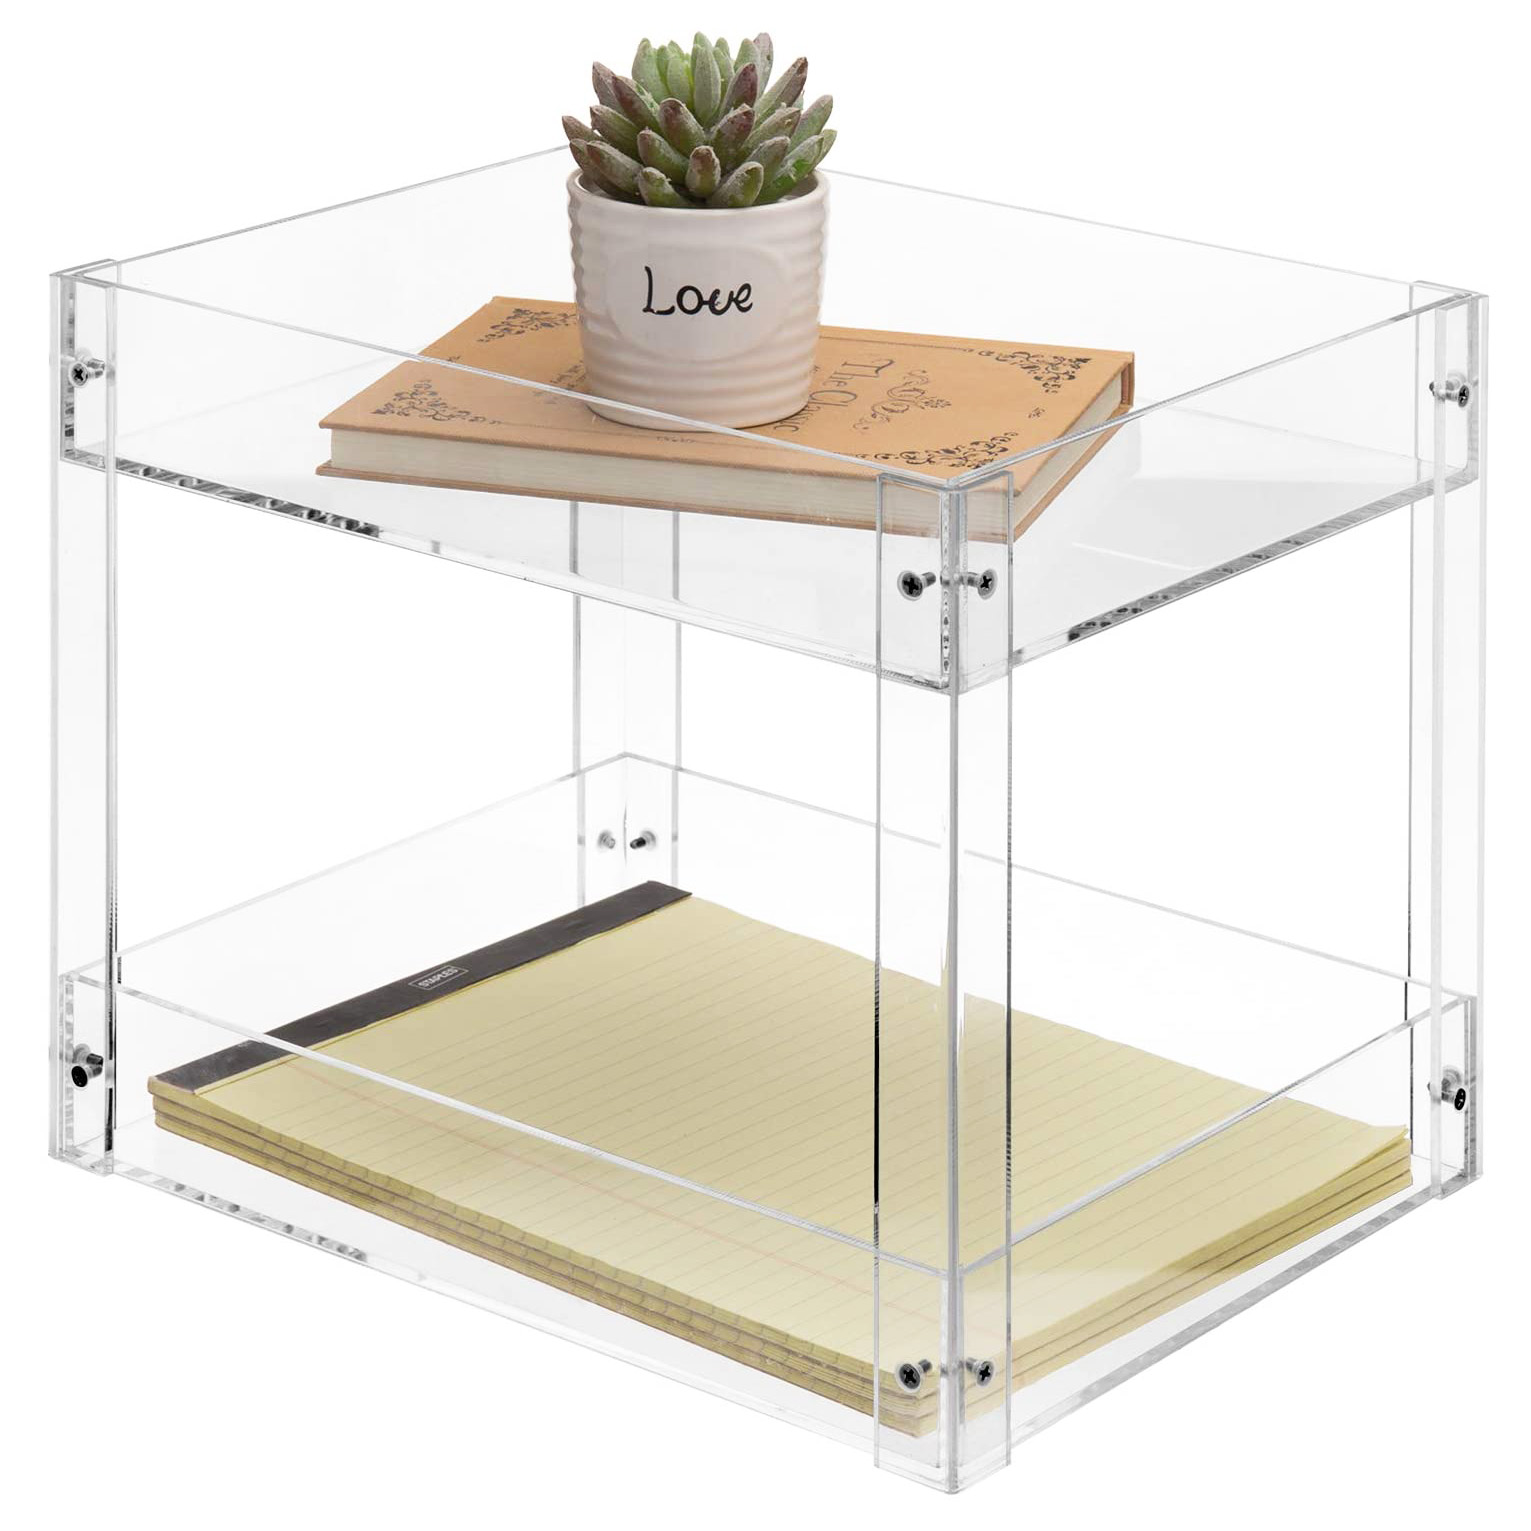 2-Tier Clear Acrylic Desktop Document Holder Stand